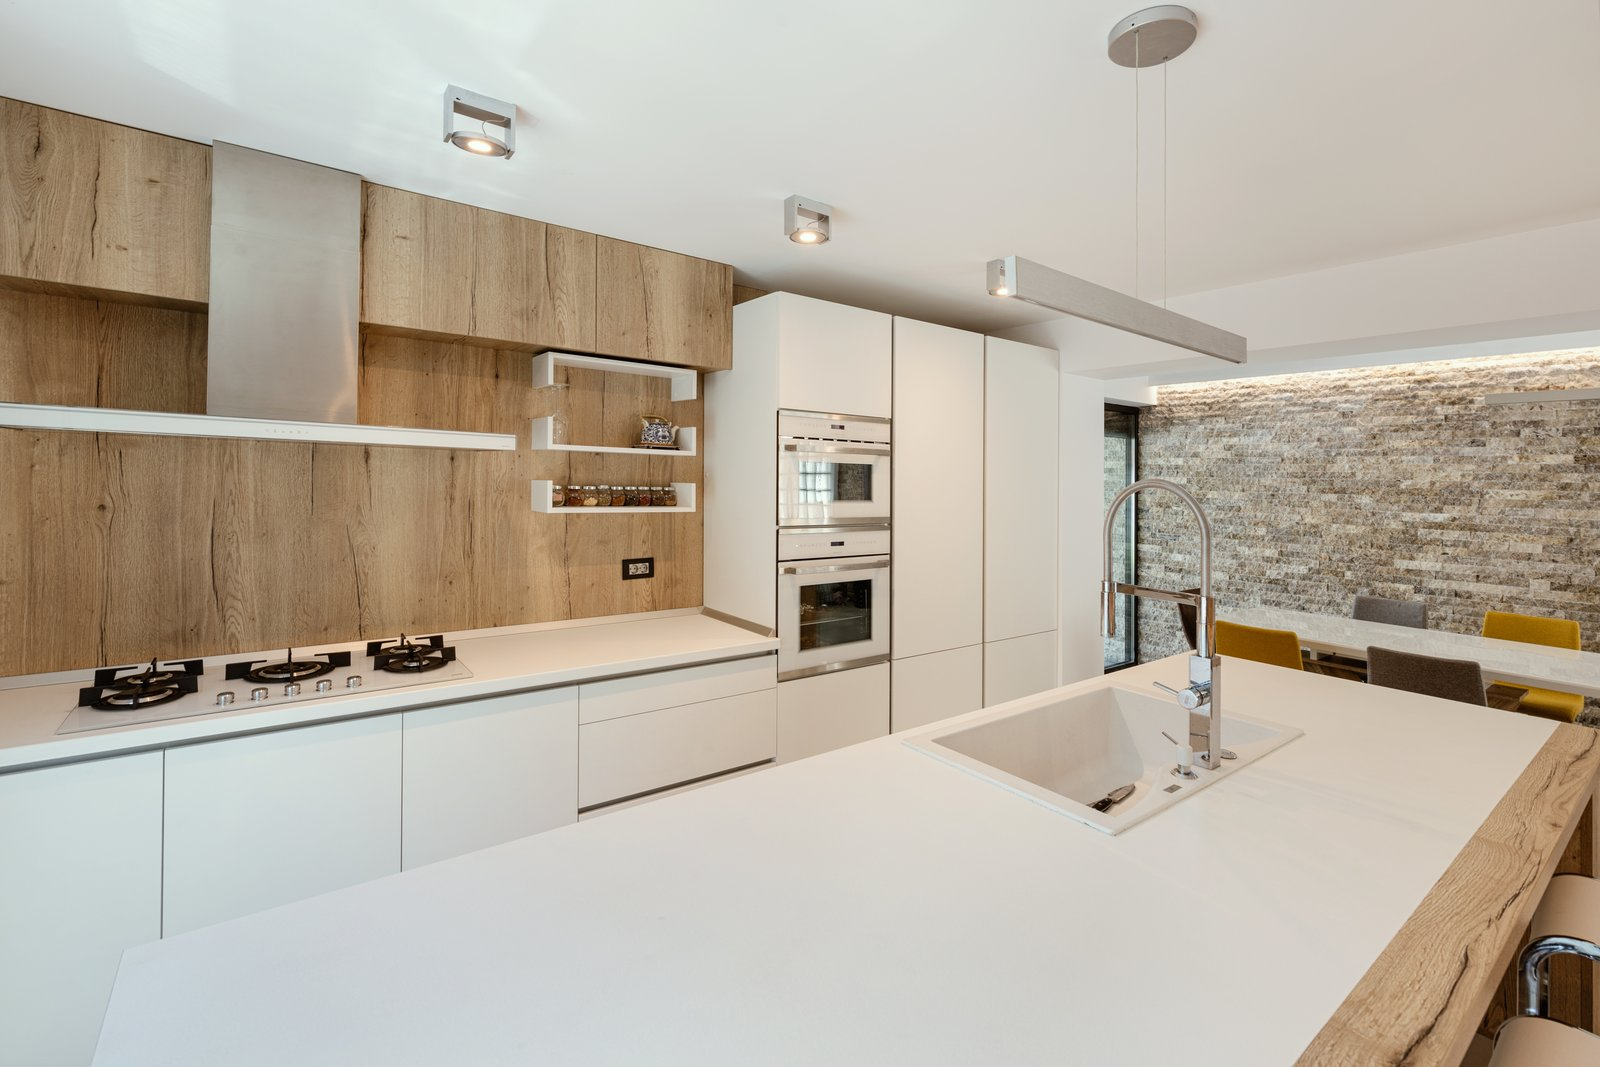 Kitchen, Dishwasher, Refrigerator, White Cabinet, Wall Oven, Ceiling Lighting, Drop In Sink, and Light Hardwood Floor  From Sky to Sea